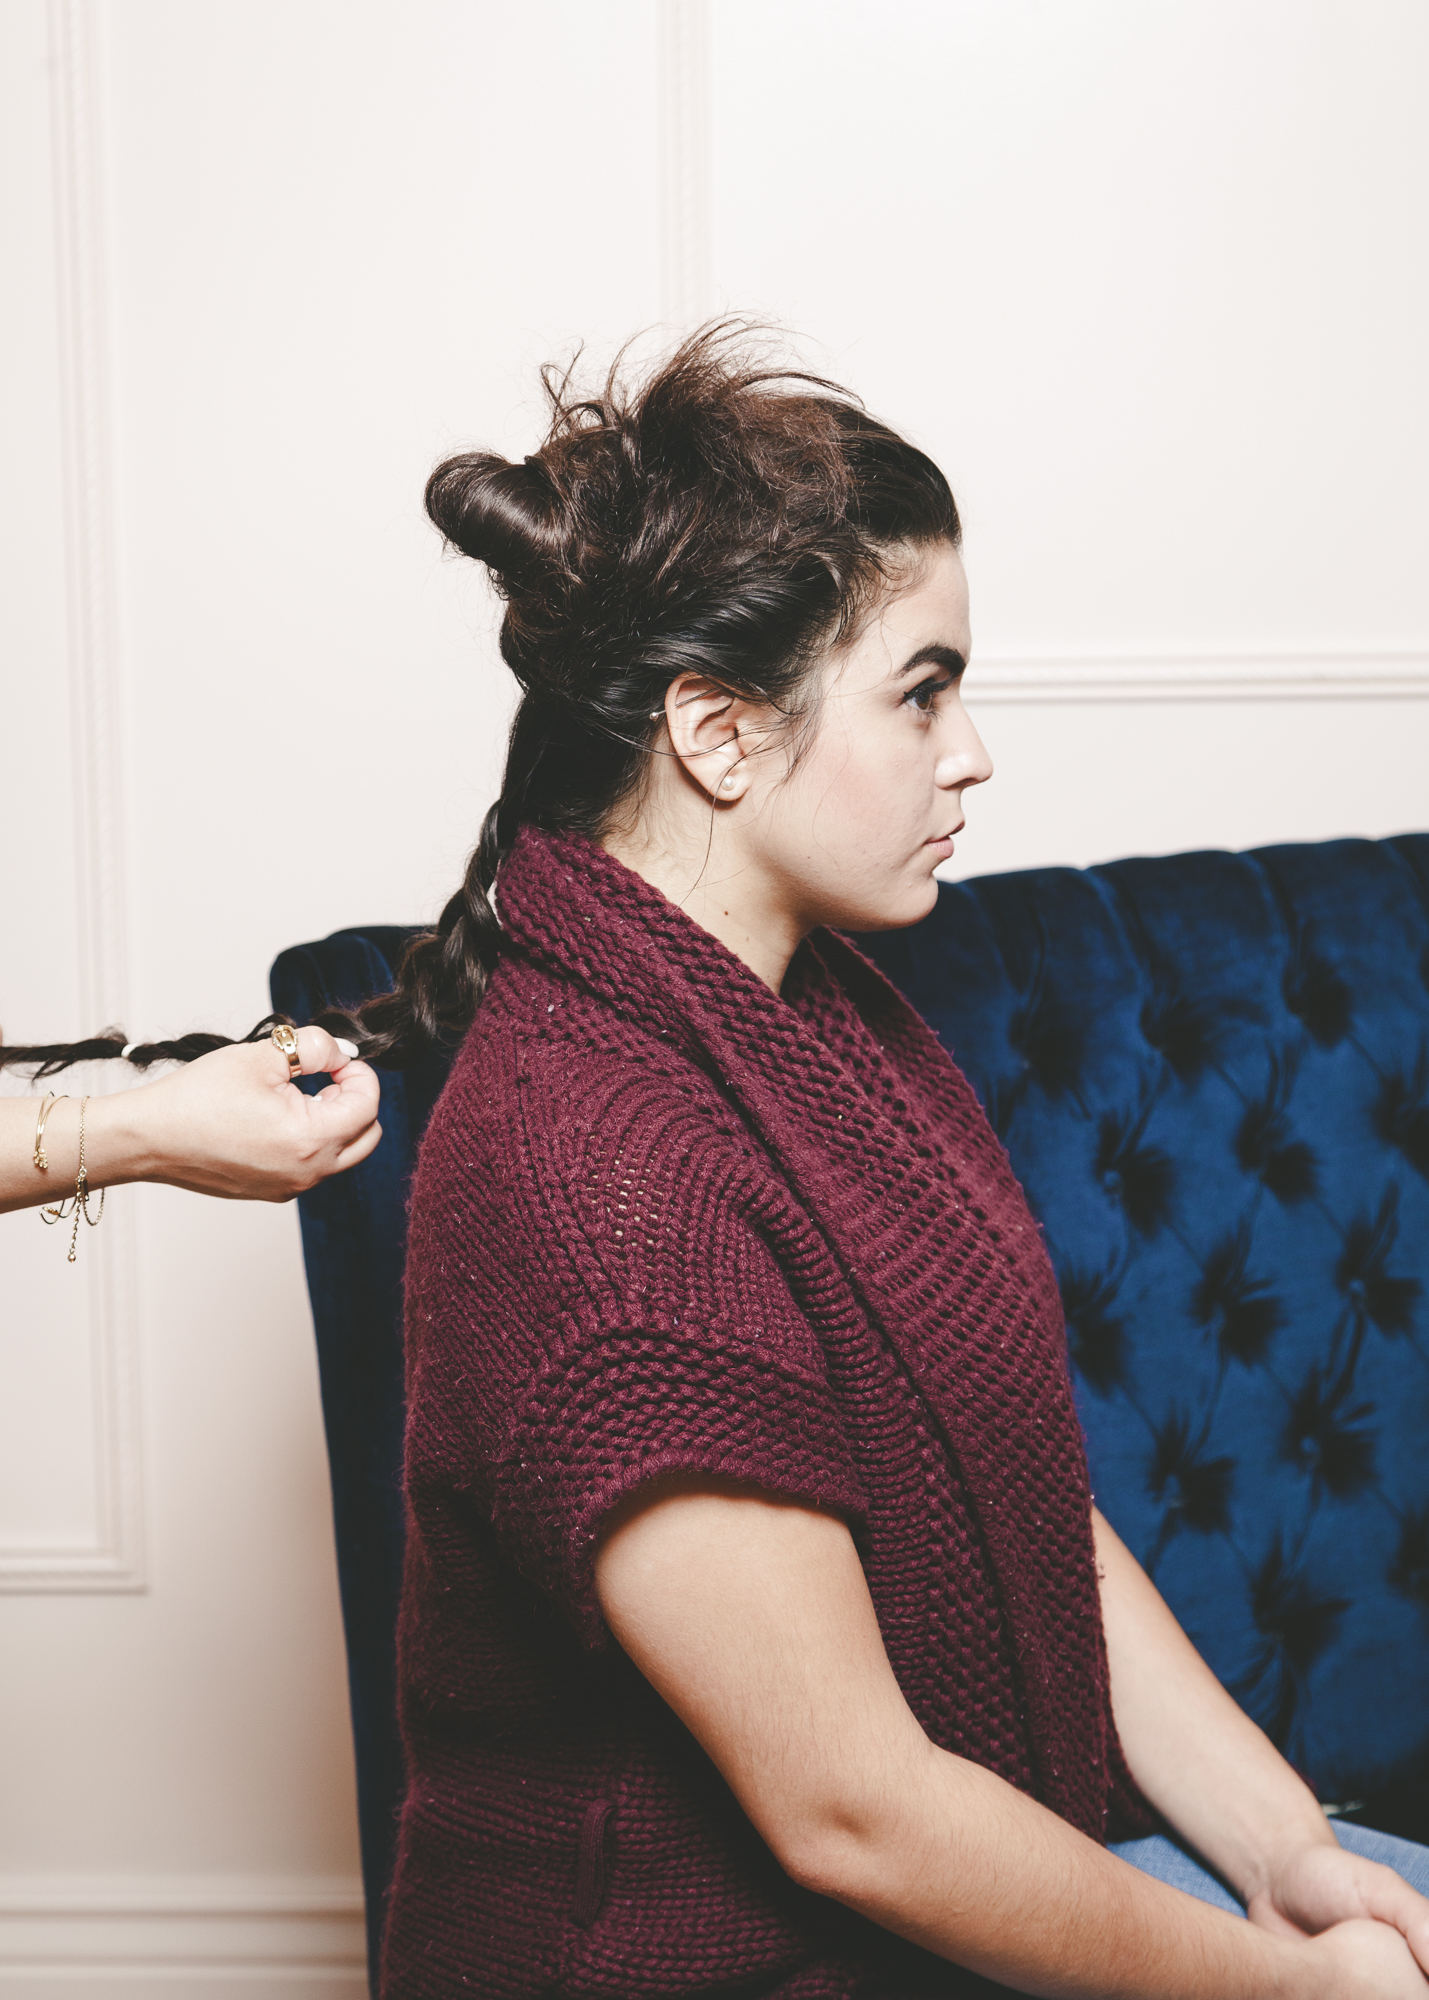 braiding hair to create top knot